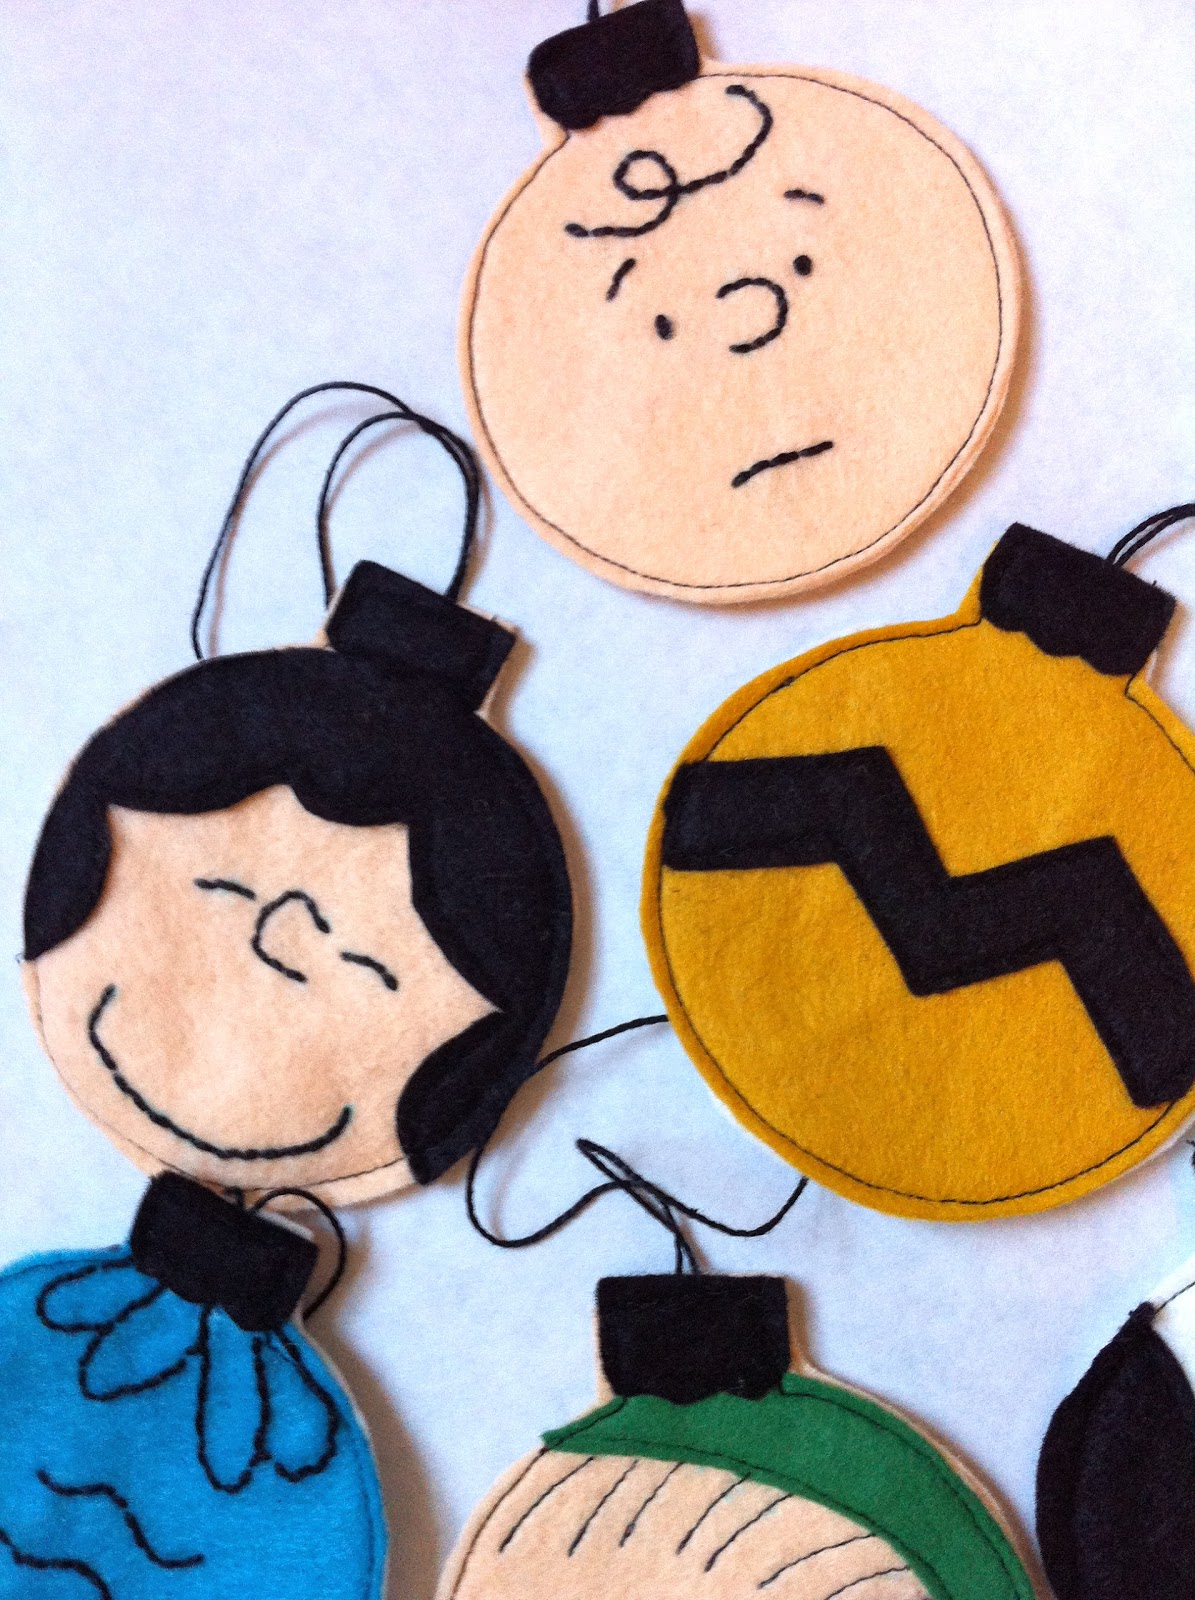 update you can now buy your own set of charlie brown ornaments from my etsy shop right here - Charlie Brown Christmas Decorations